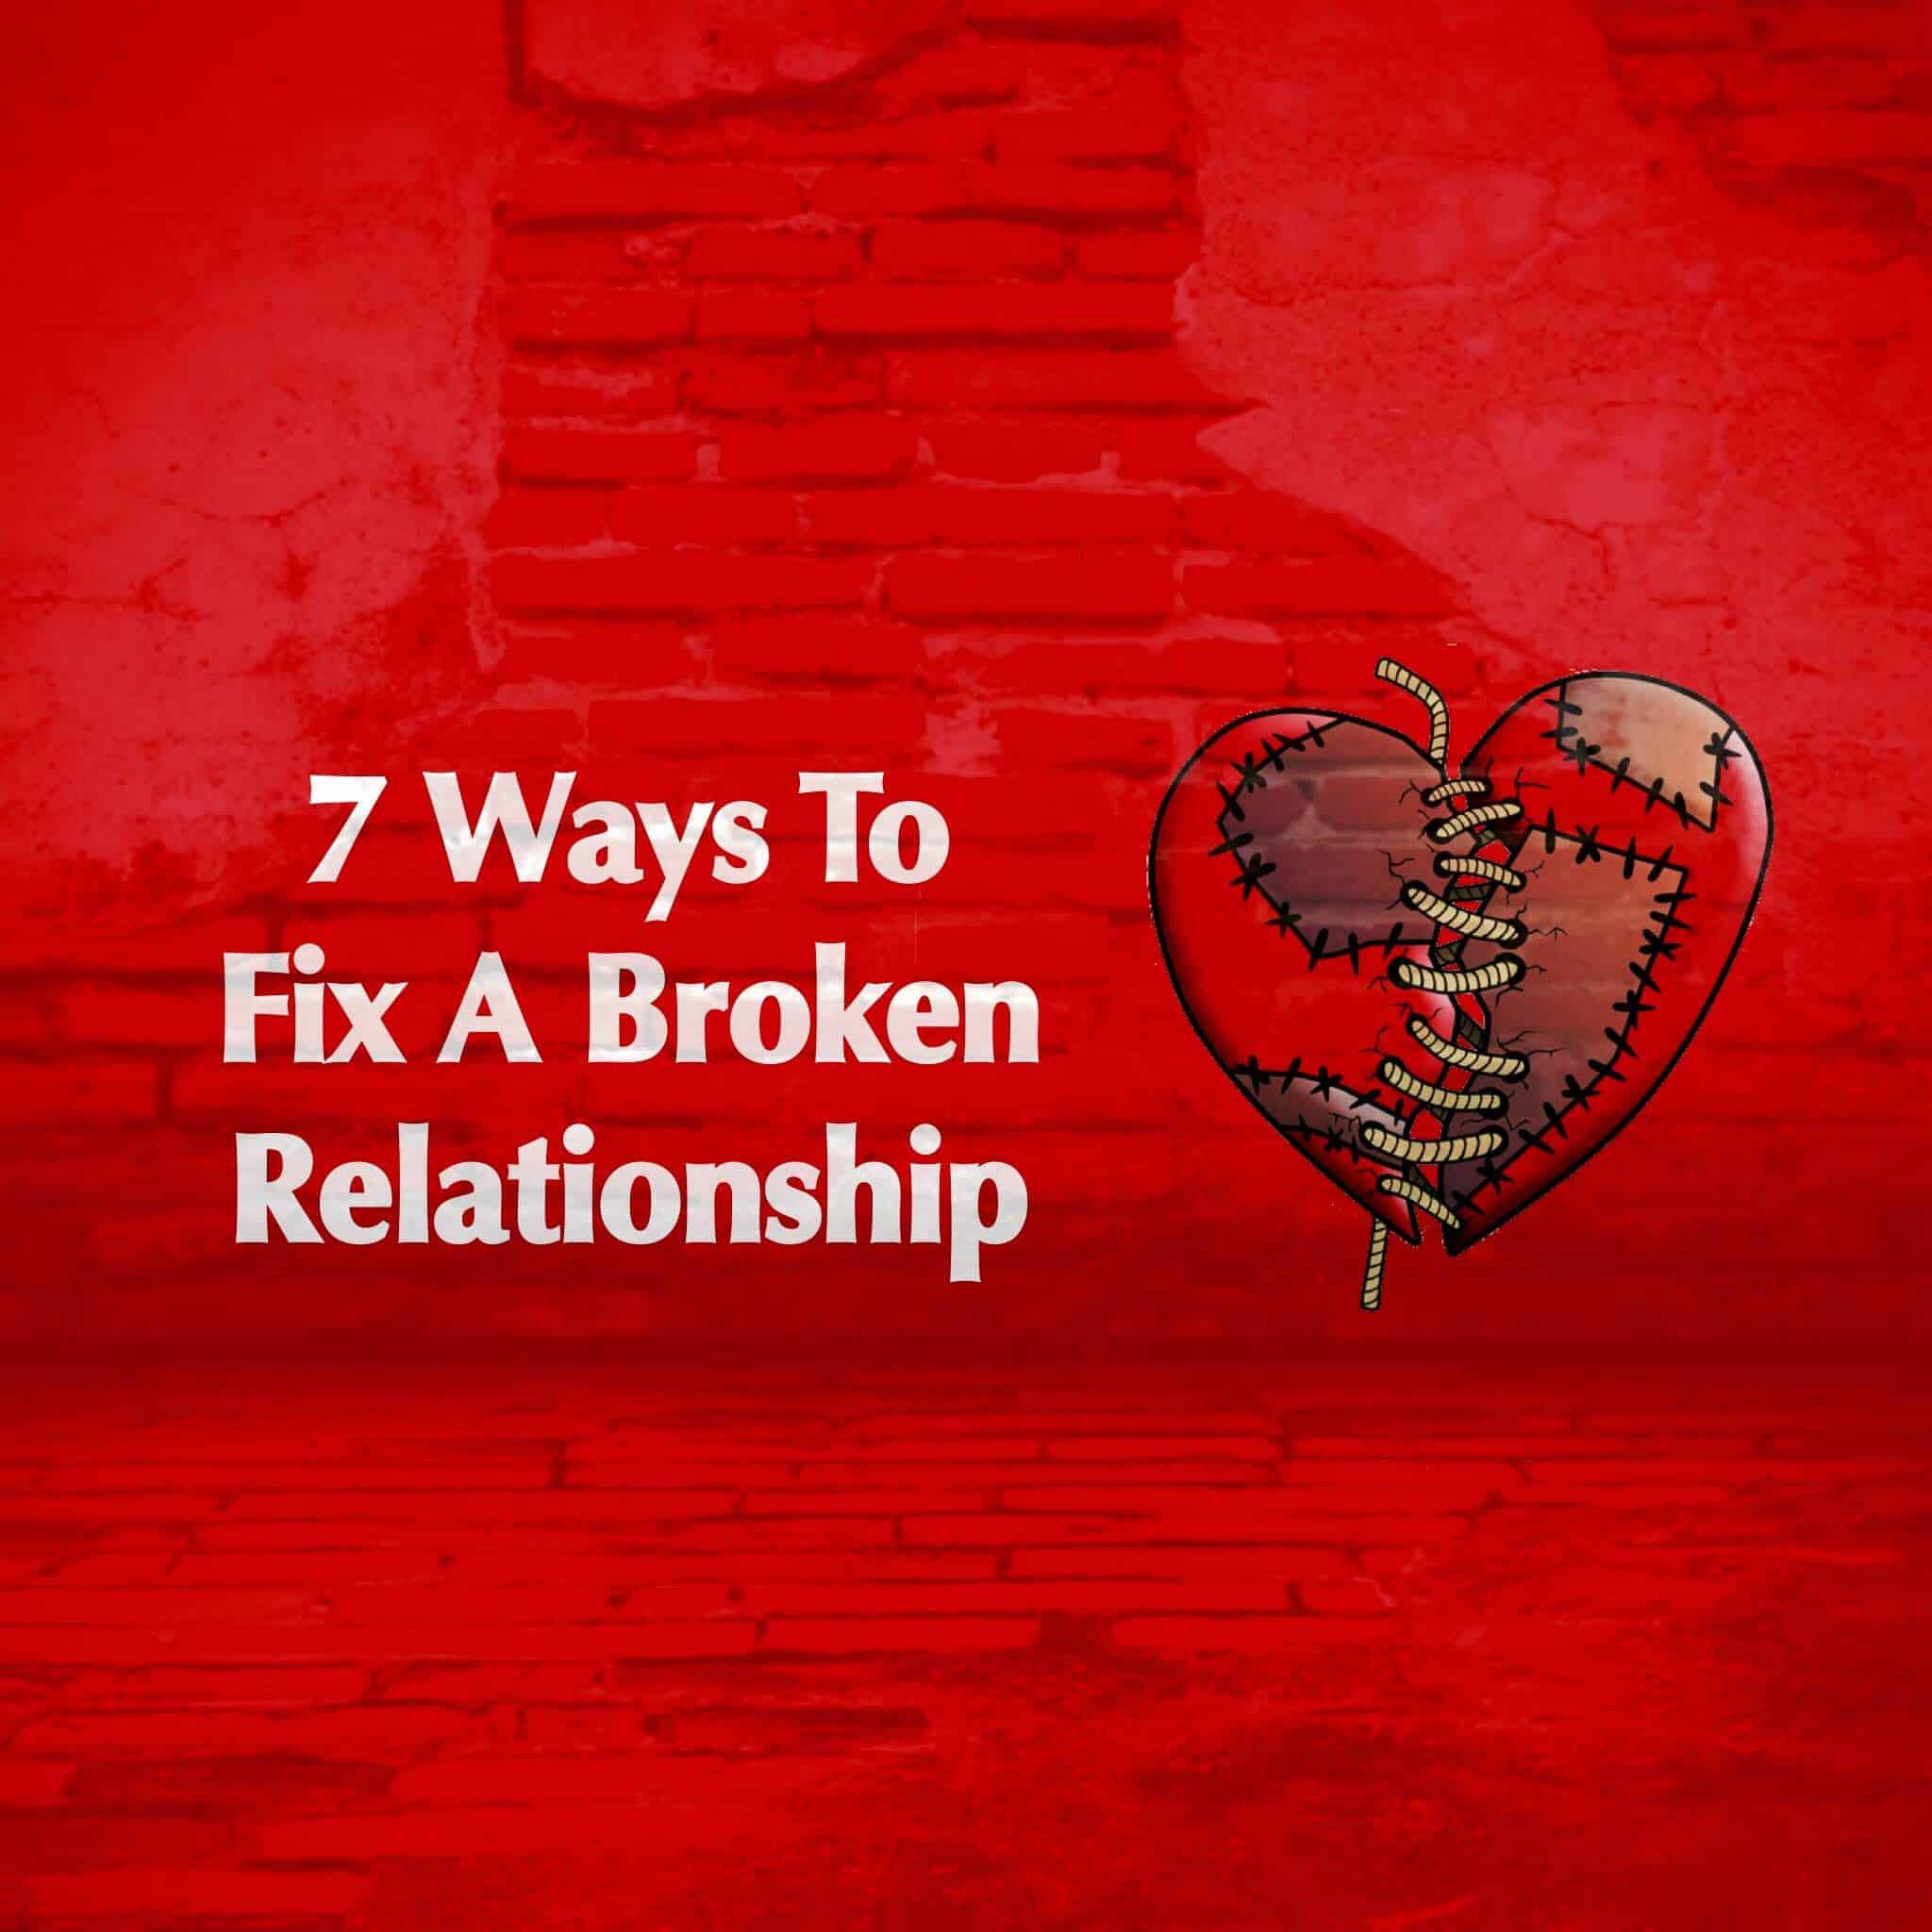 7 Ways To Fix A Broken Relationship - PowerOfPositivity